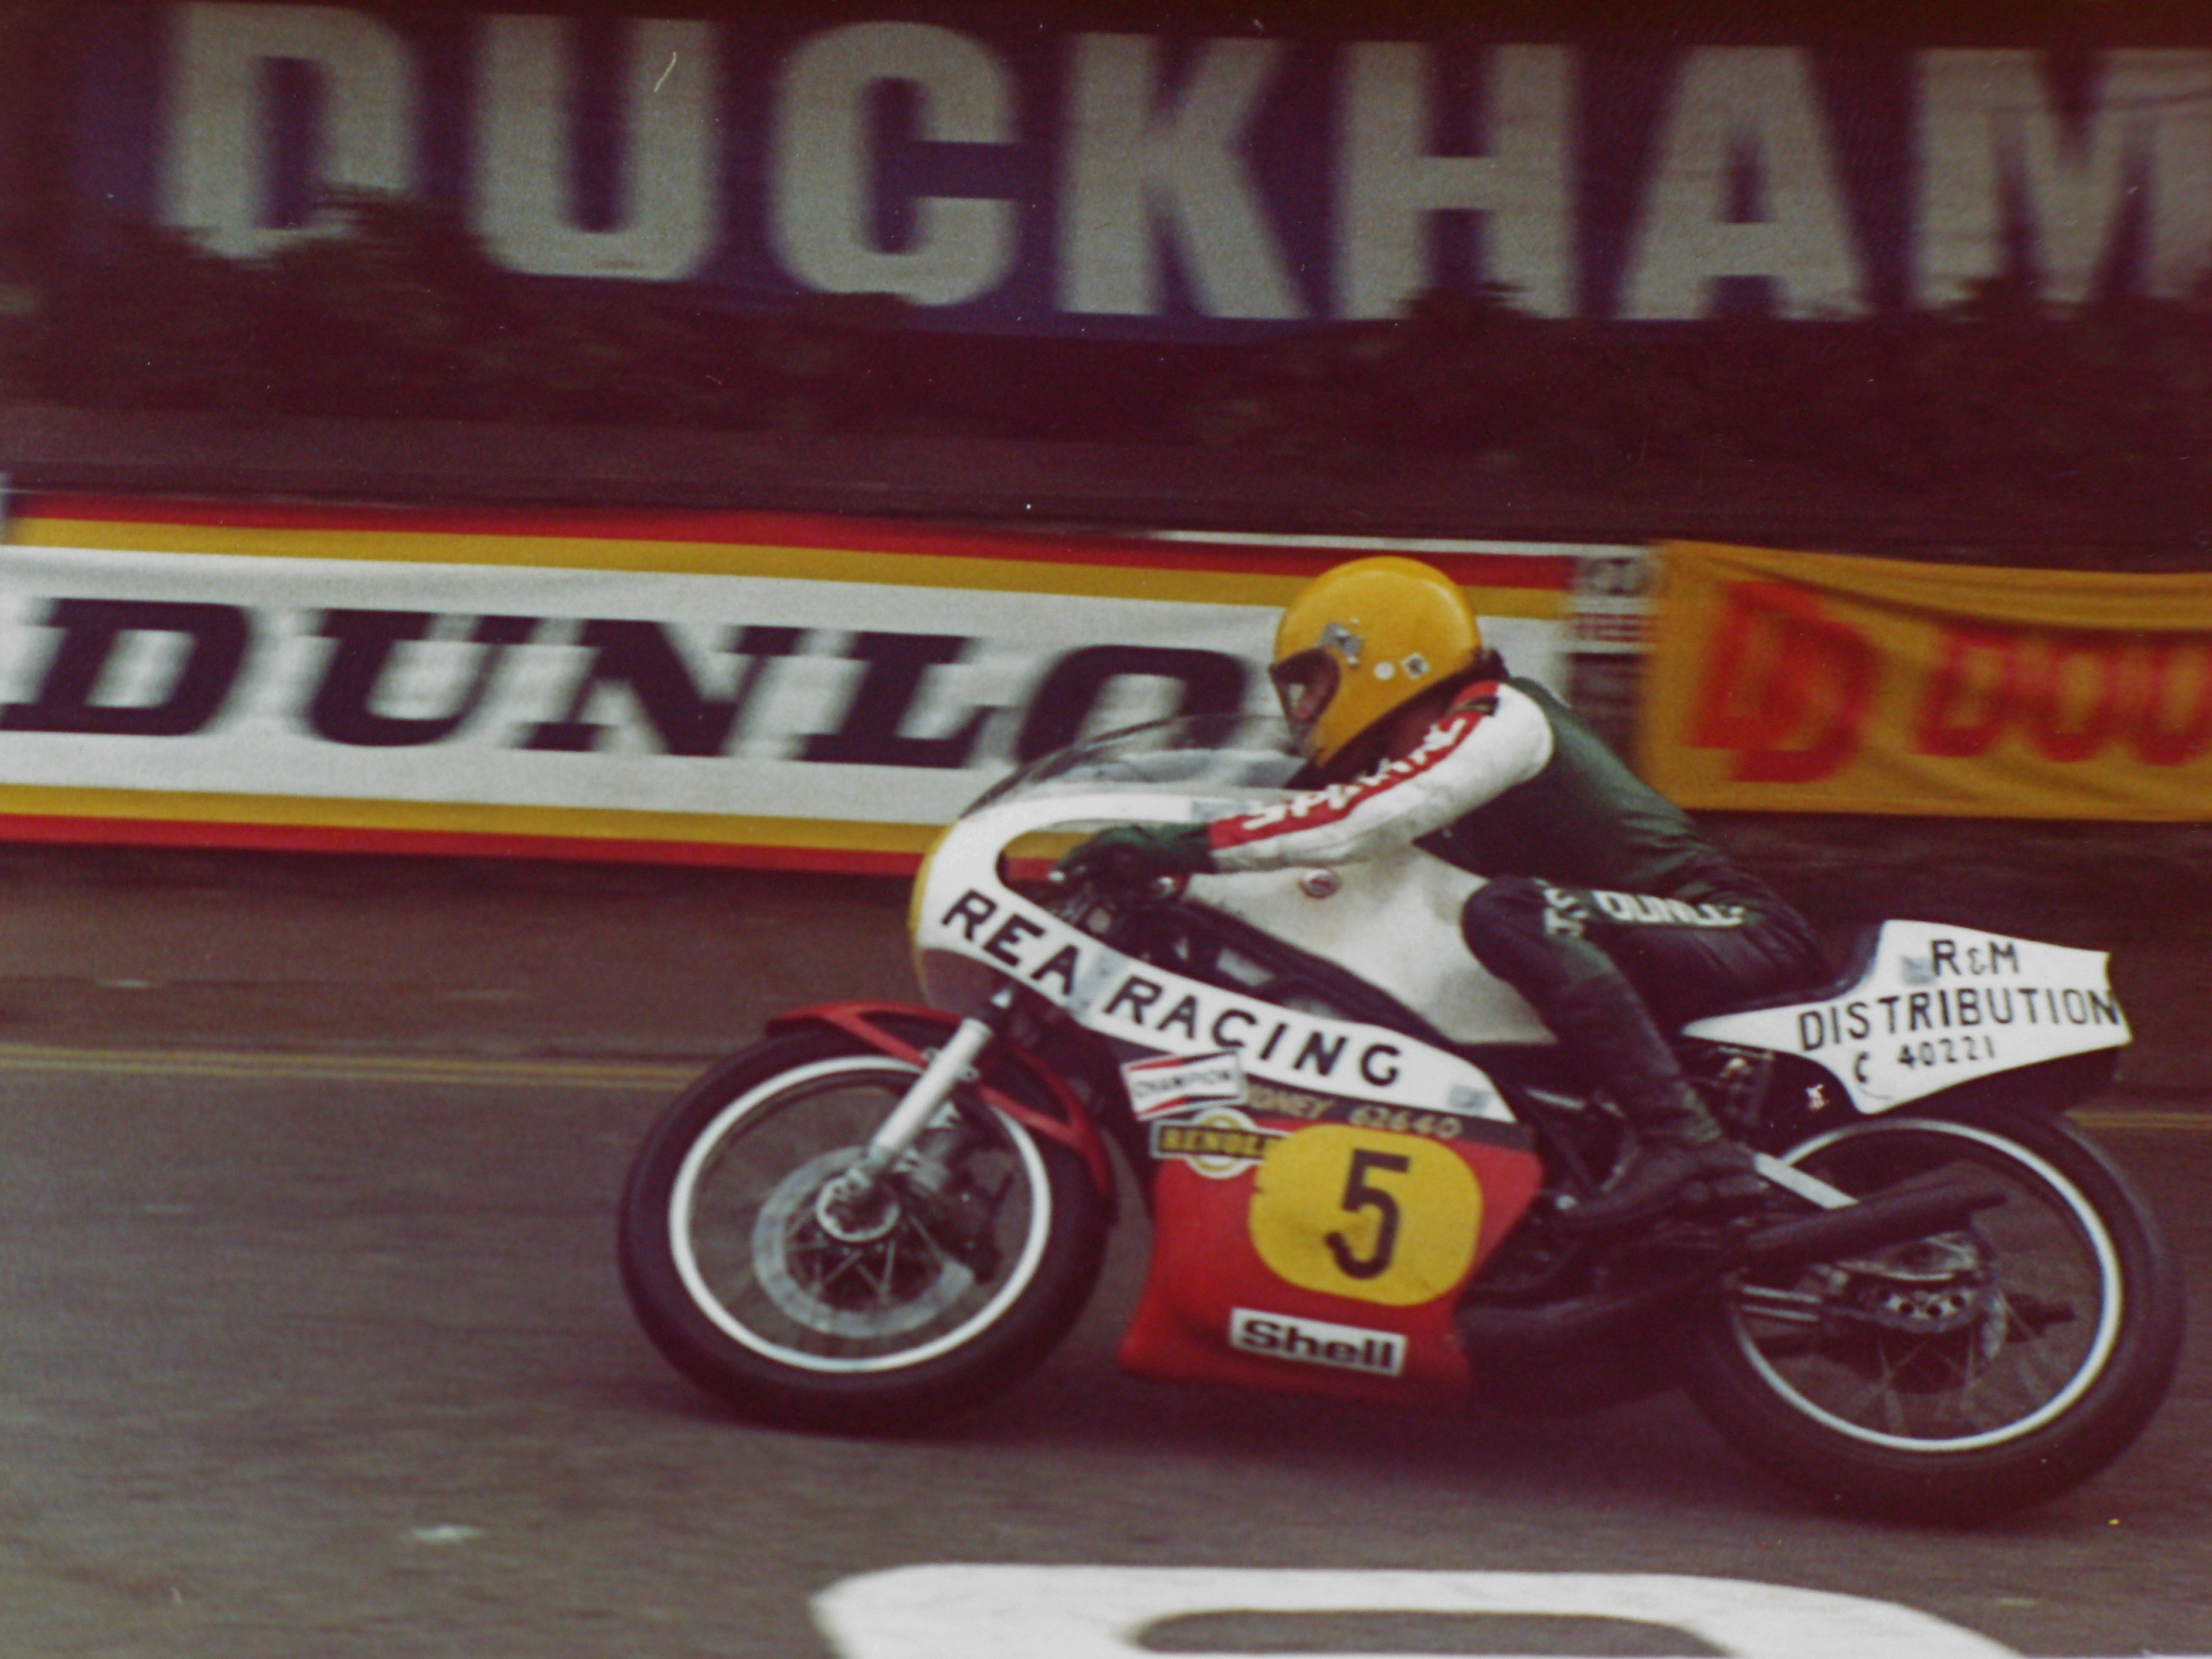 Joey dunlop isle of HD Wallpaper